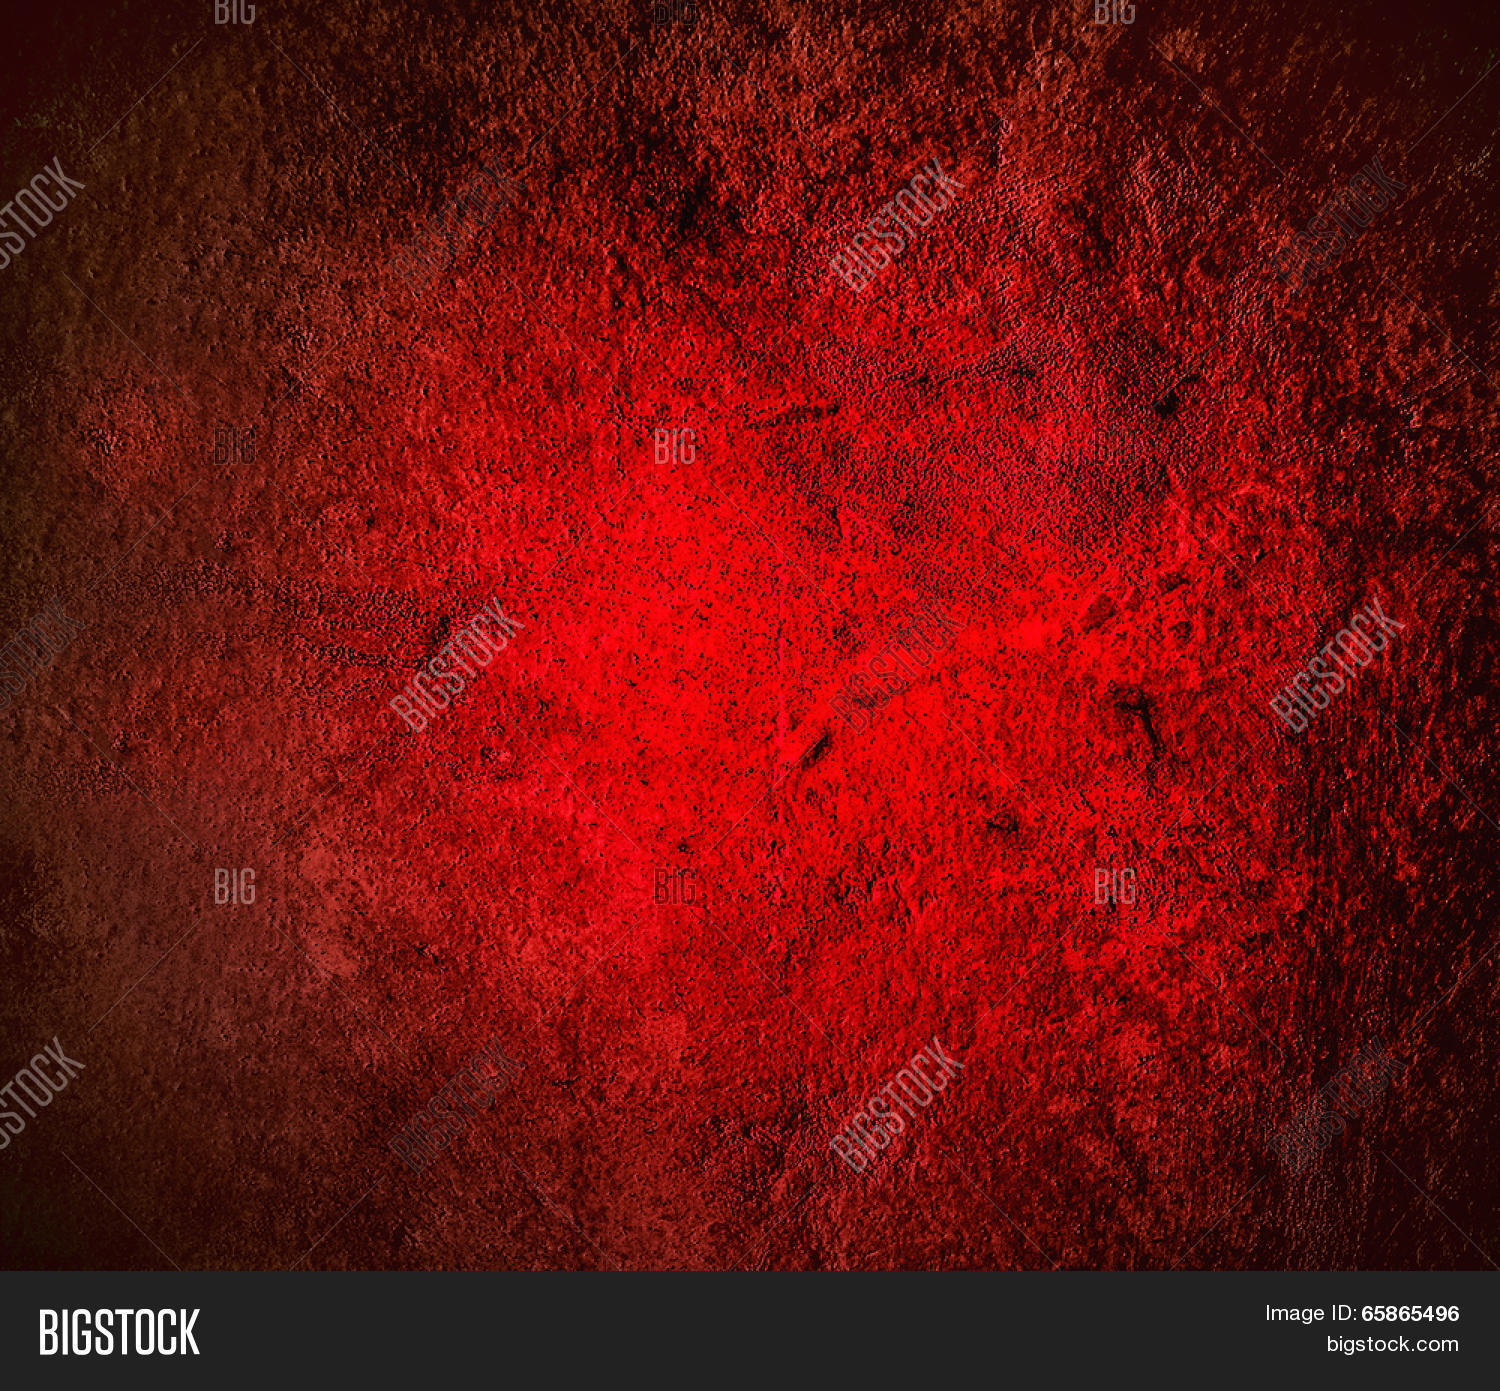 Abstract illustration background image photo bigstock for Light red wall paint